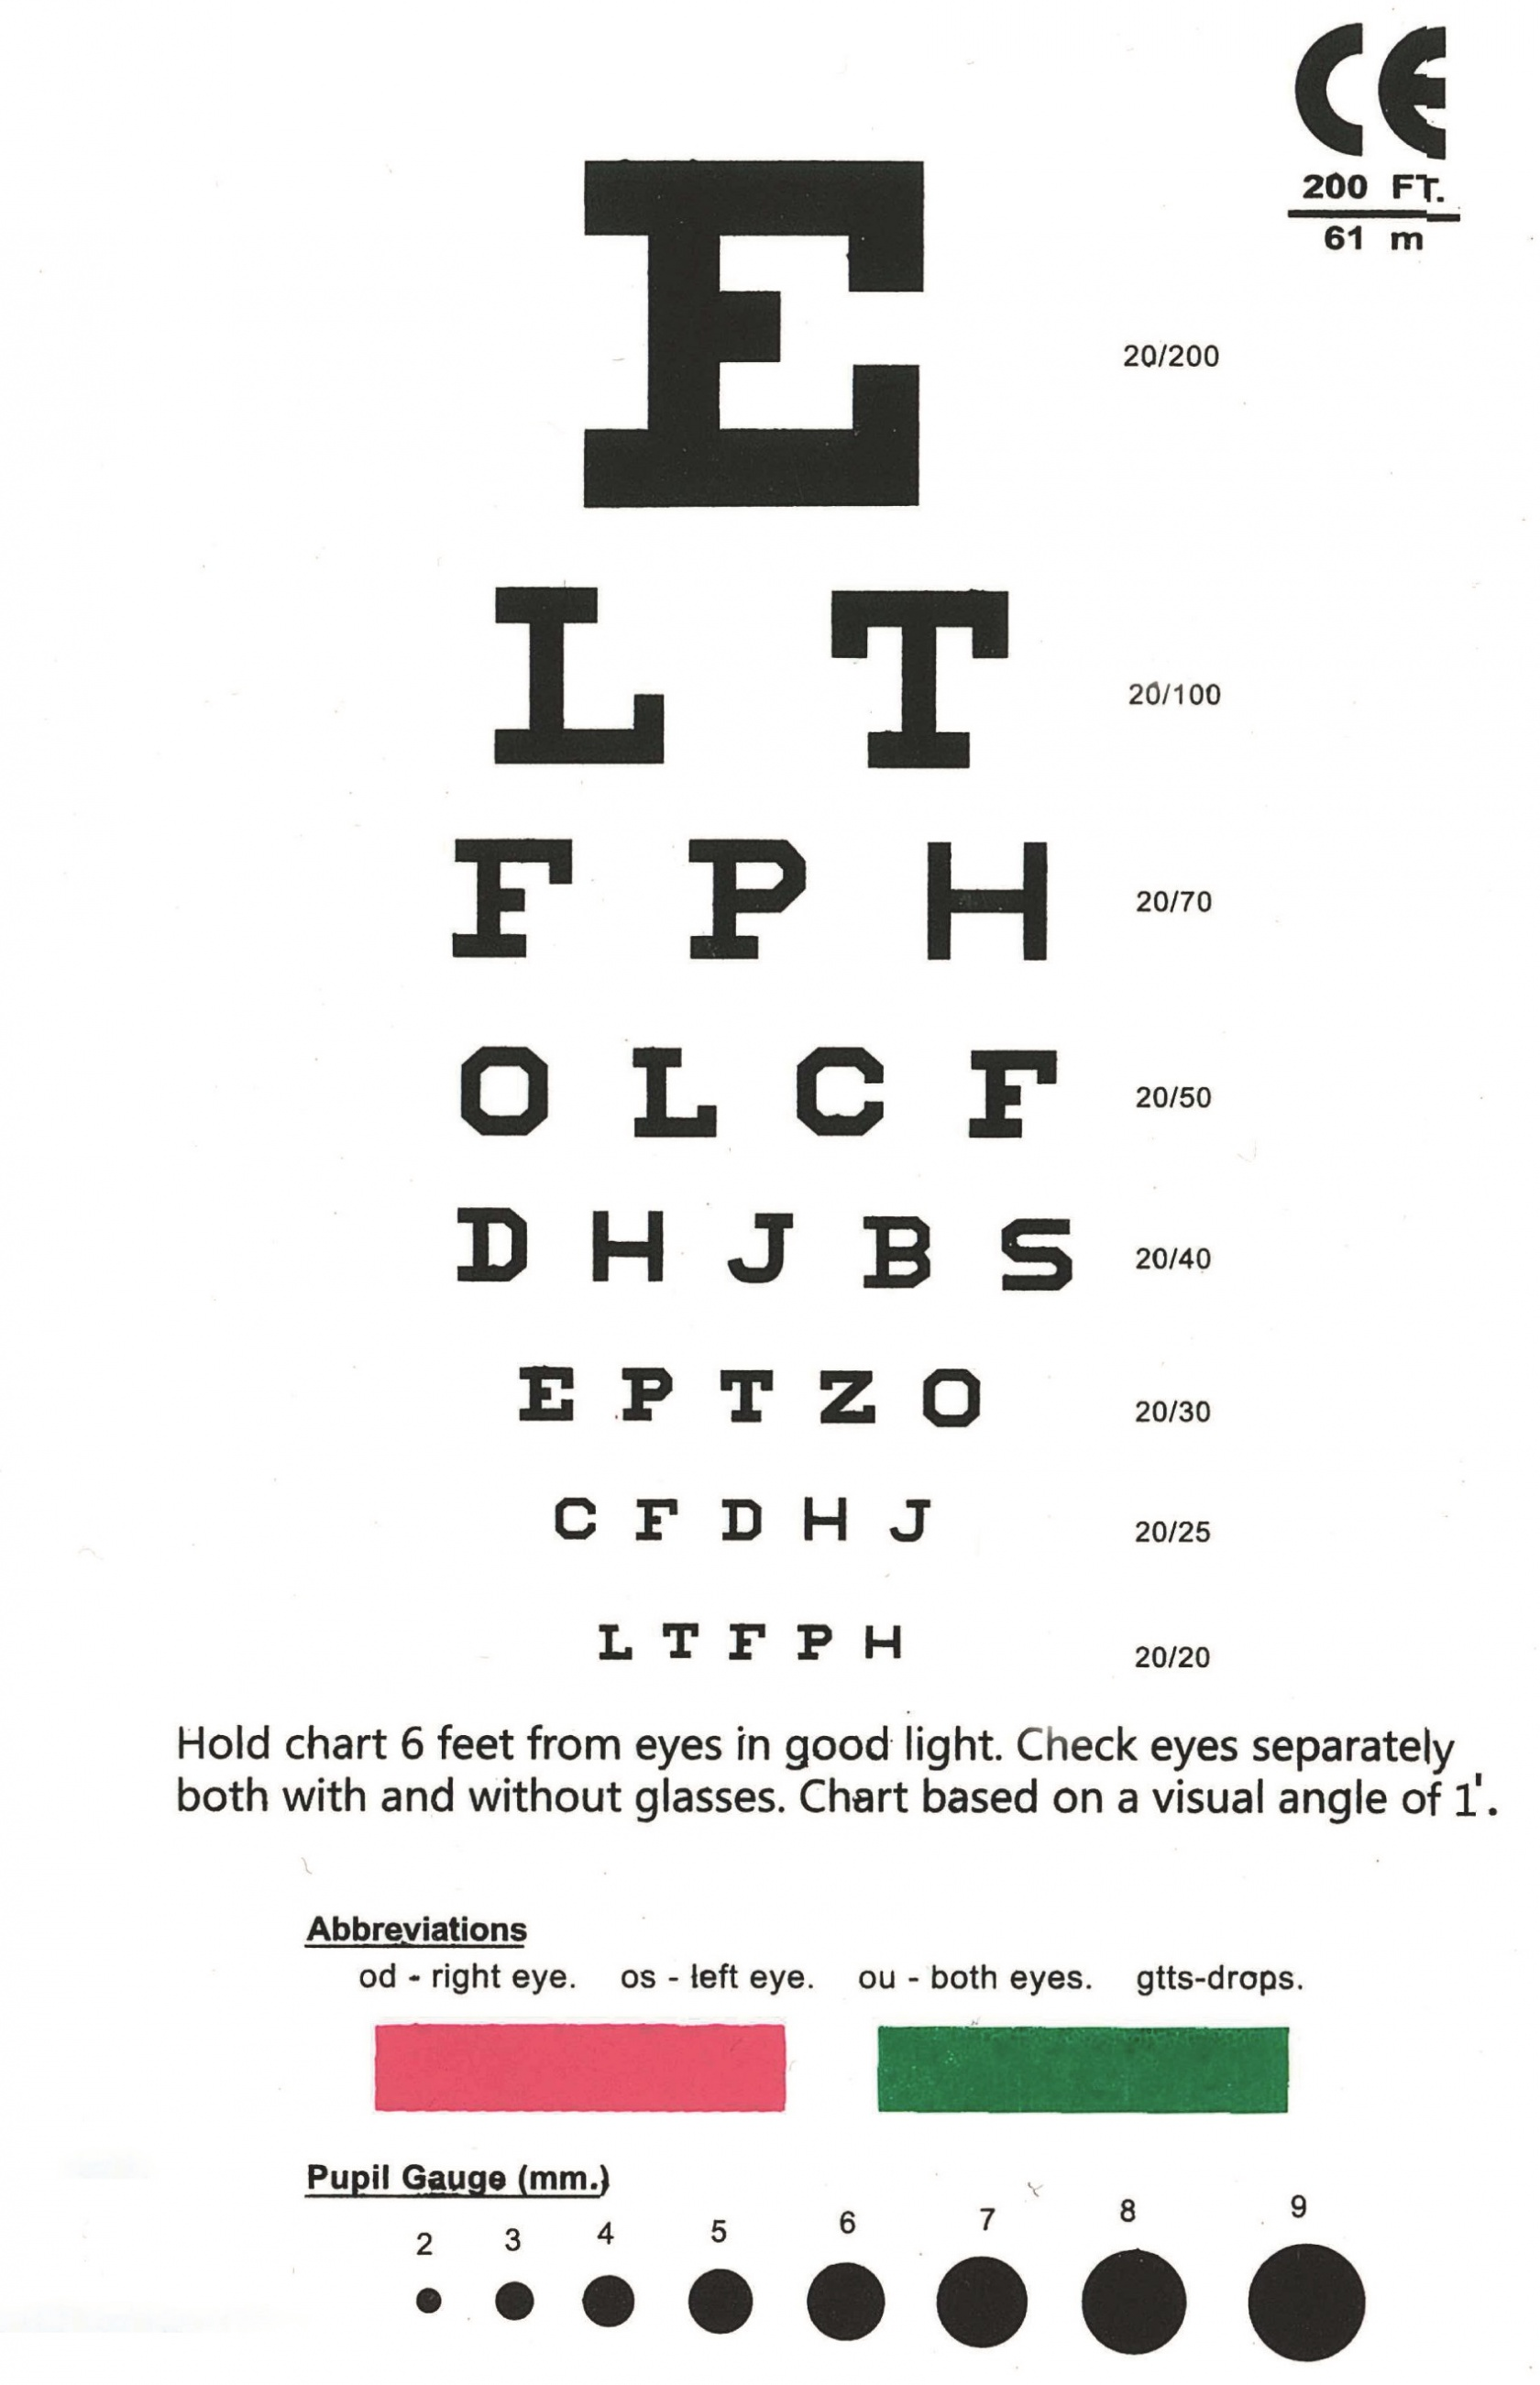 Eye Chart Snellen Pocket Eye Chart